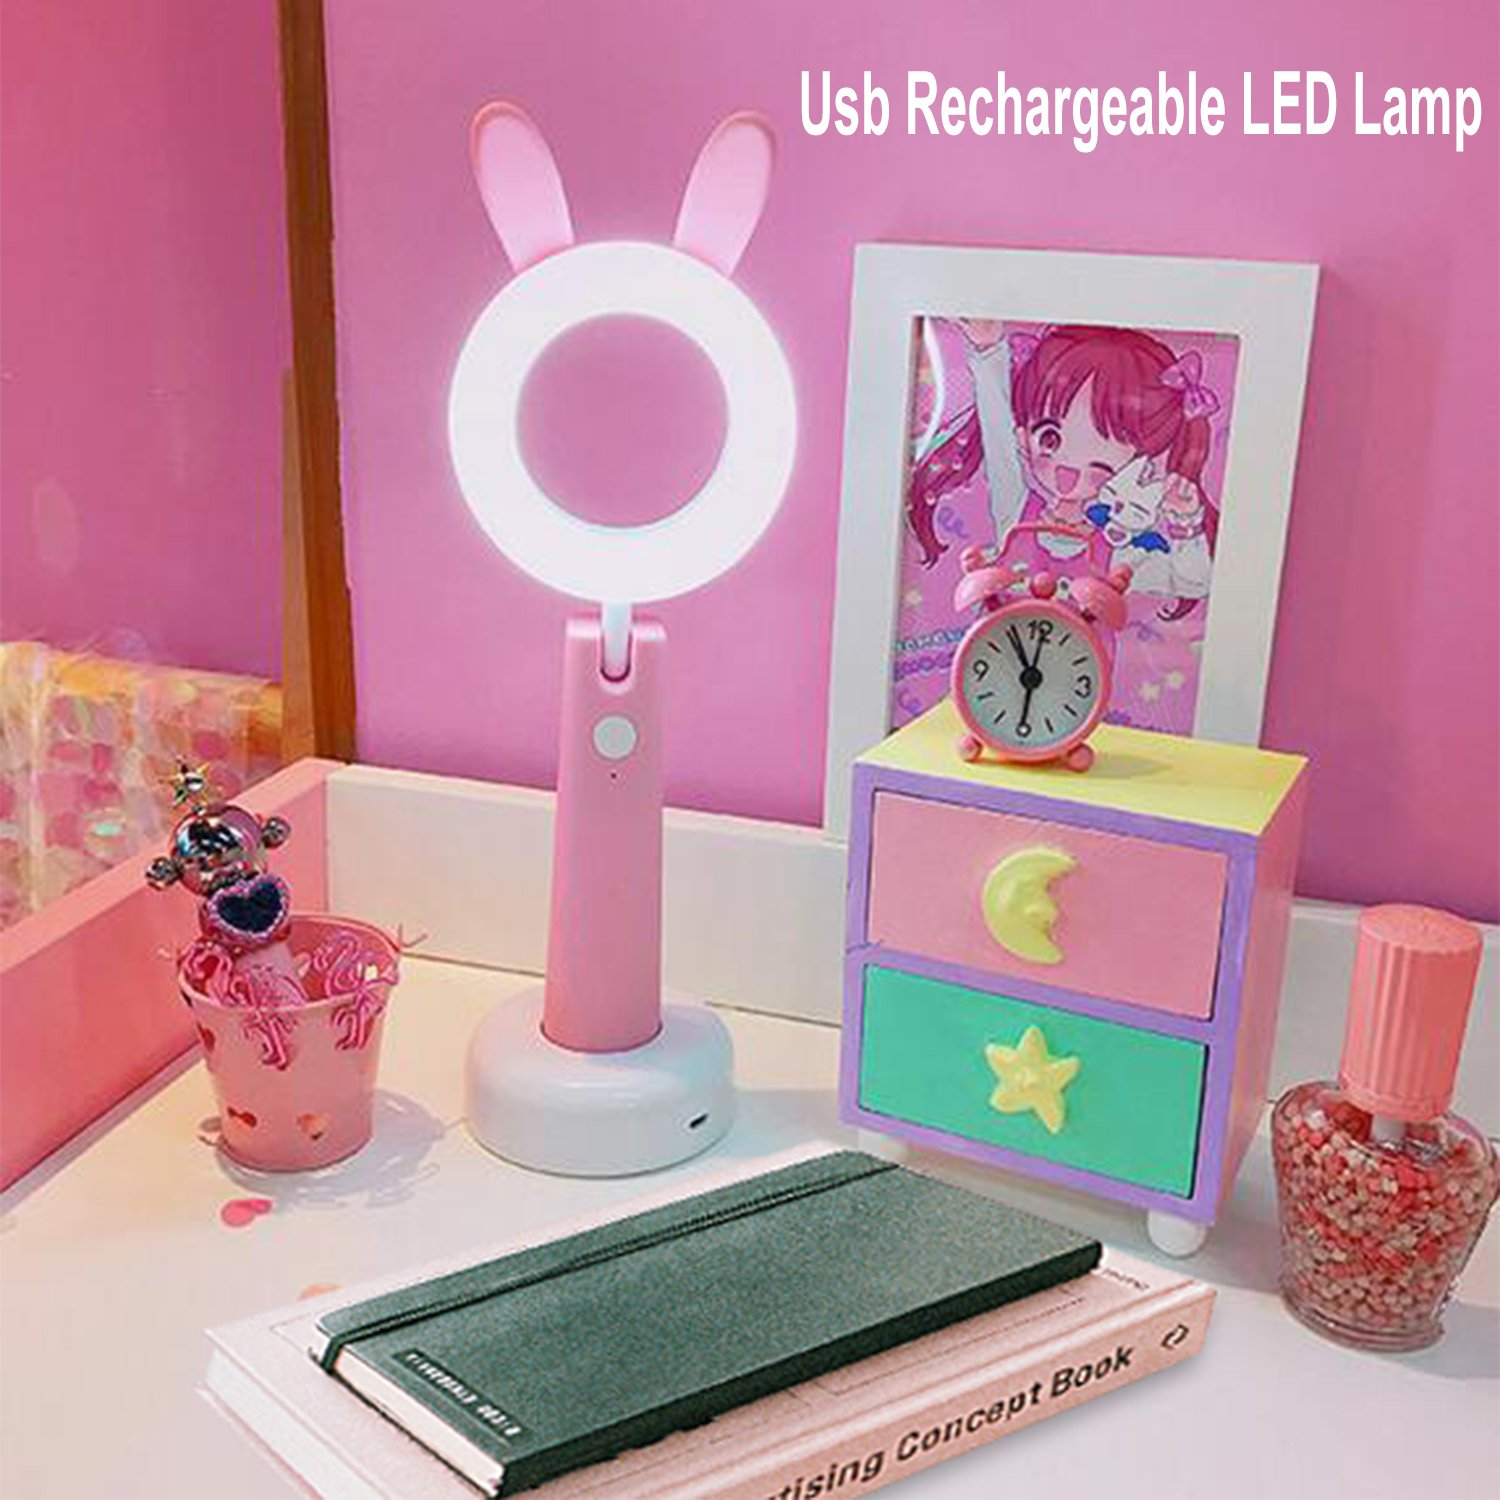 Desk Lamp for Kids, Lntly LED Animal Pet Cute Bunny Ear Desk Lamp,USB Rechargeable Desk Light Eye-Caring Children Studying Lamp, with 3 Dimming Levels for Bedroom Home School